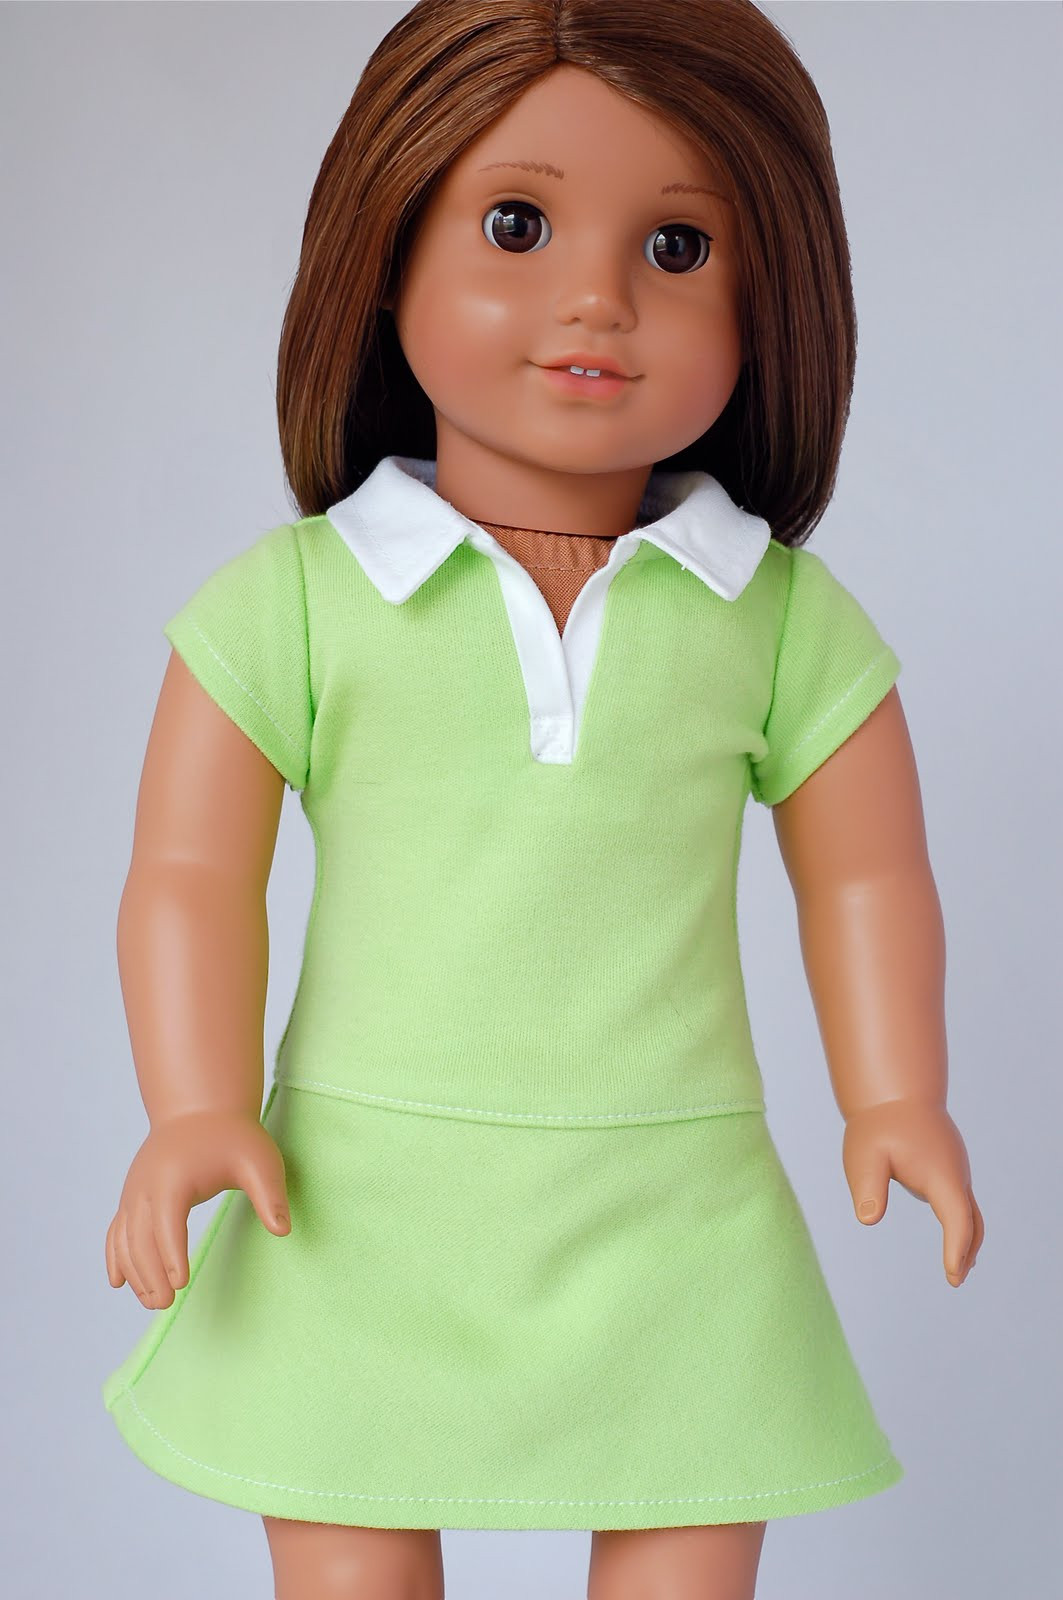 Doll Clothes Patterns Fresh American Girl Doll Clothes Pattern Polo Shirt Dress Of Great 43 Models Doll Clothes Patterns